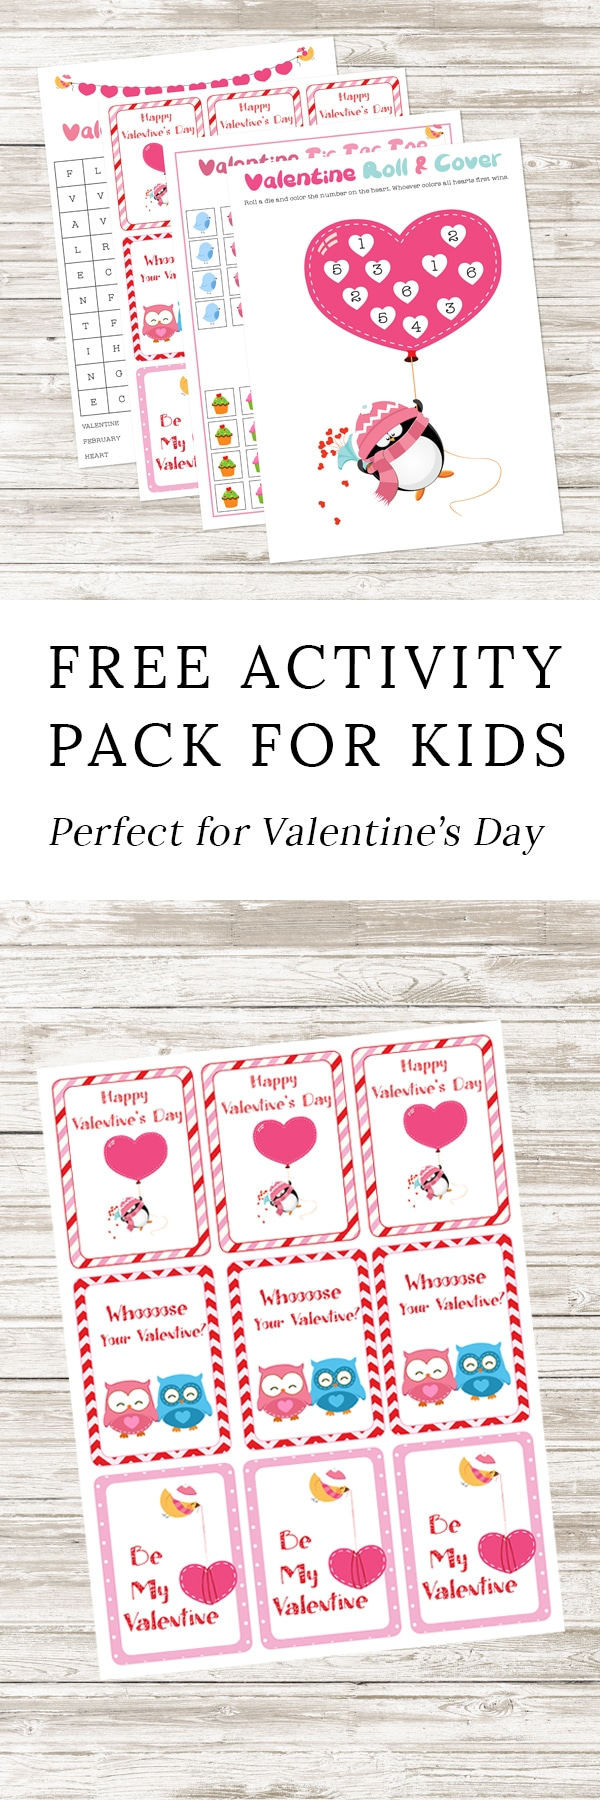 Perfect for school Valentine's Day parties, classroom fun, travel, or keeping busy at home, kids of all ages will enjoy this Free Printable Valentine's Day Activity Pack.